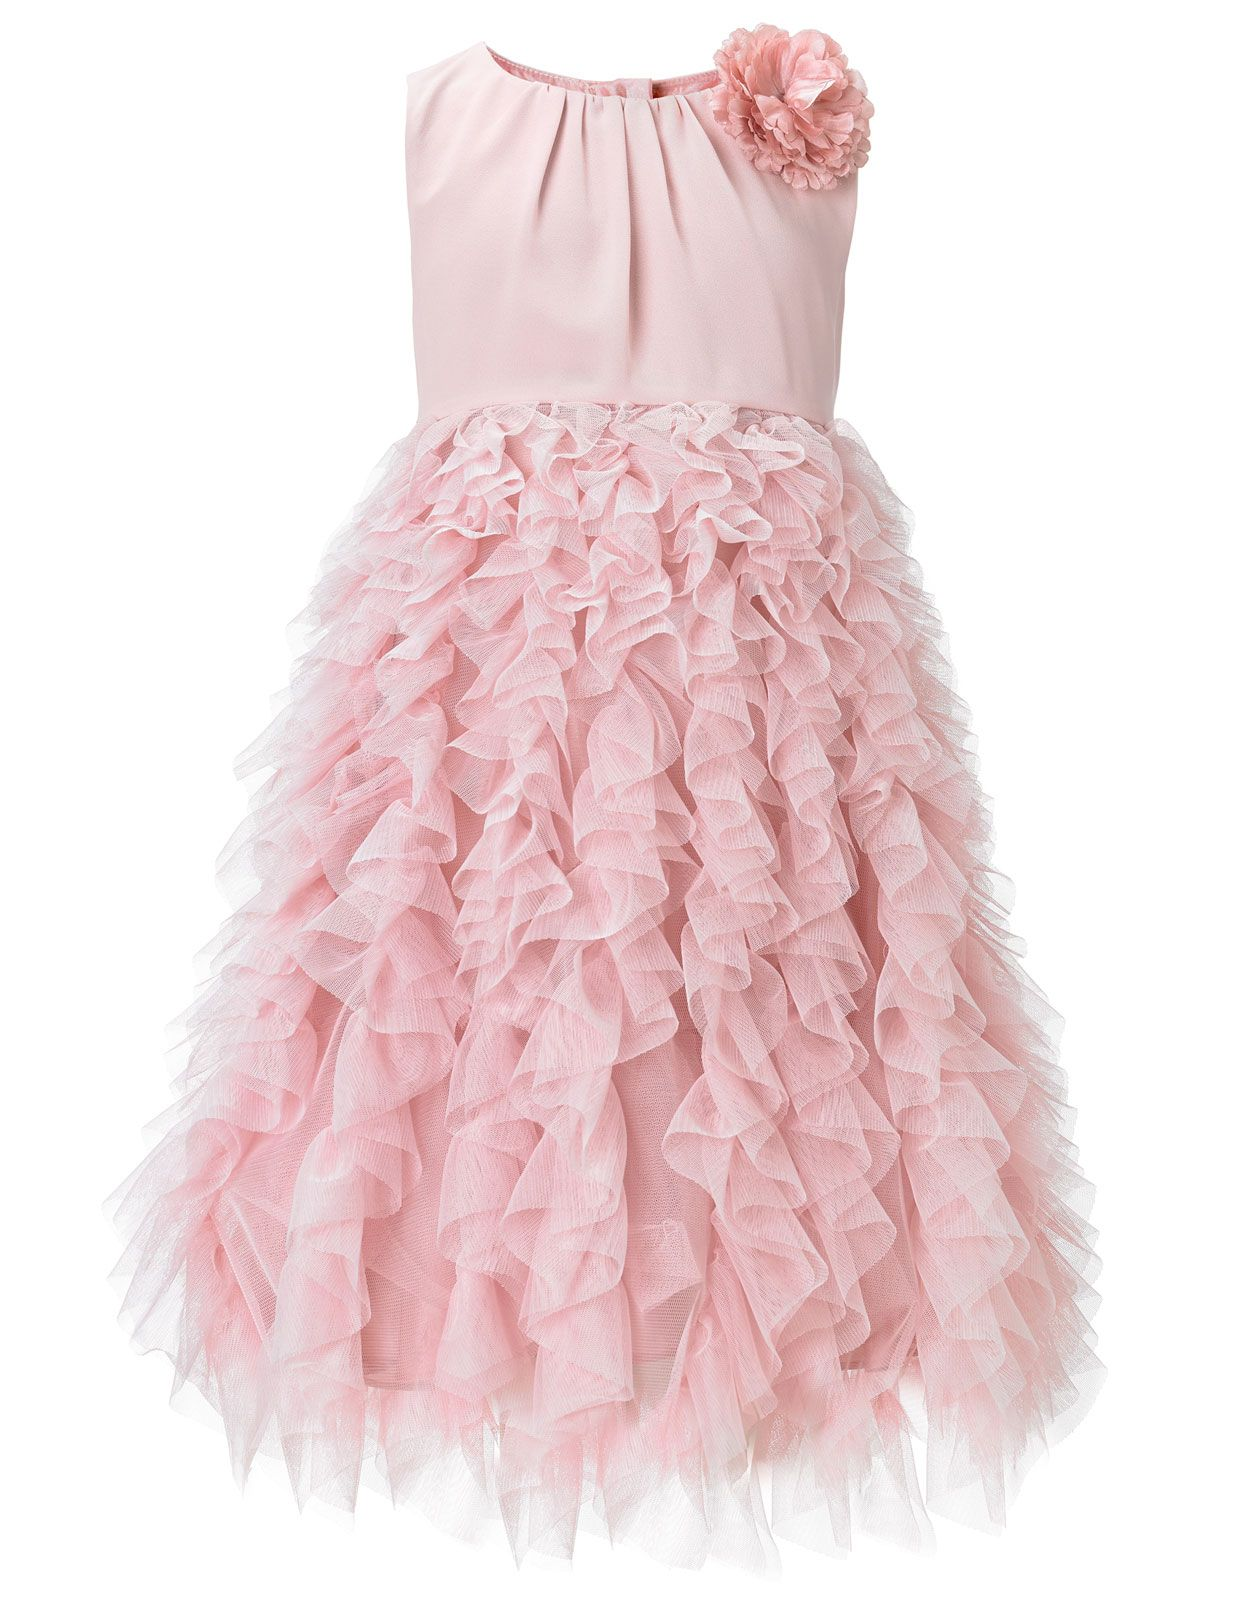 Pom Pom Dress | Pink | Monsoon | ELEGANT TINY DRESSES | Pinterest ...